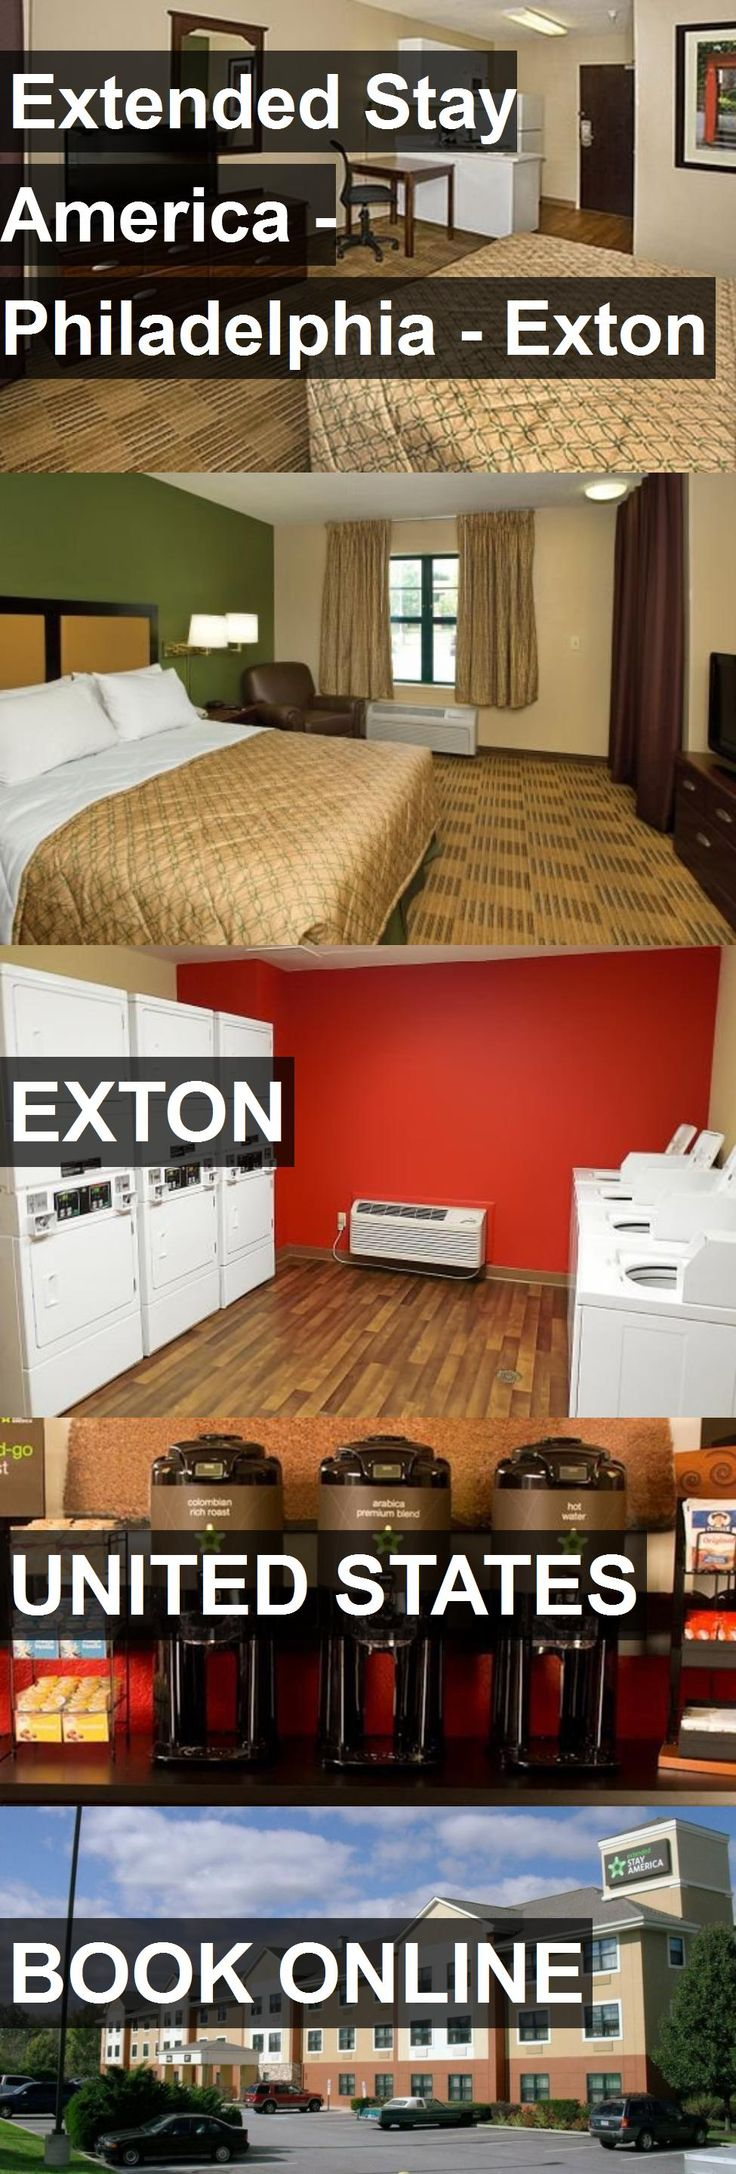 Hotel Extended Stay America - Philadelphia - Exton in Exton, United States. For more information, photos, reviews and best prices please follow the link. #UnitedStates #Exton #ExtendedStayAmerica-Philadelphia-Exton #hotel #travel #vacation